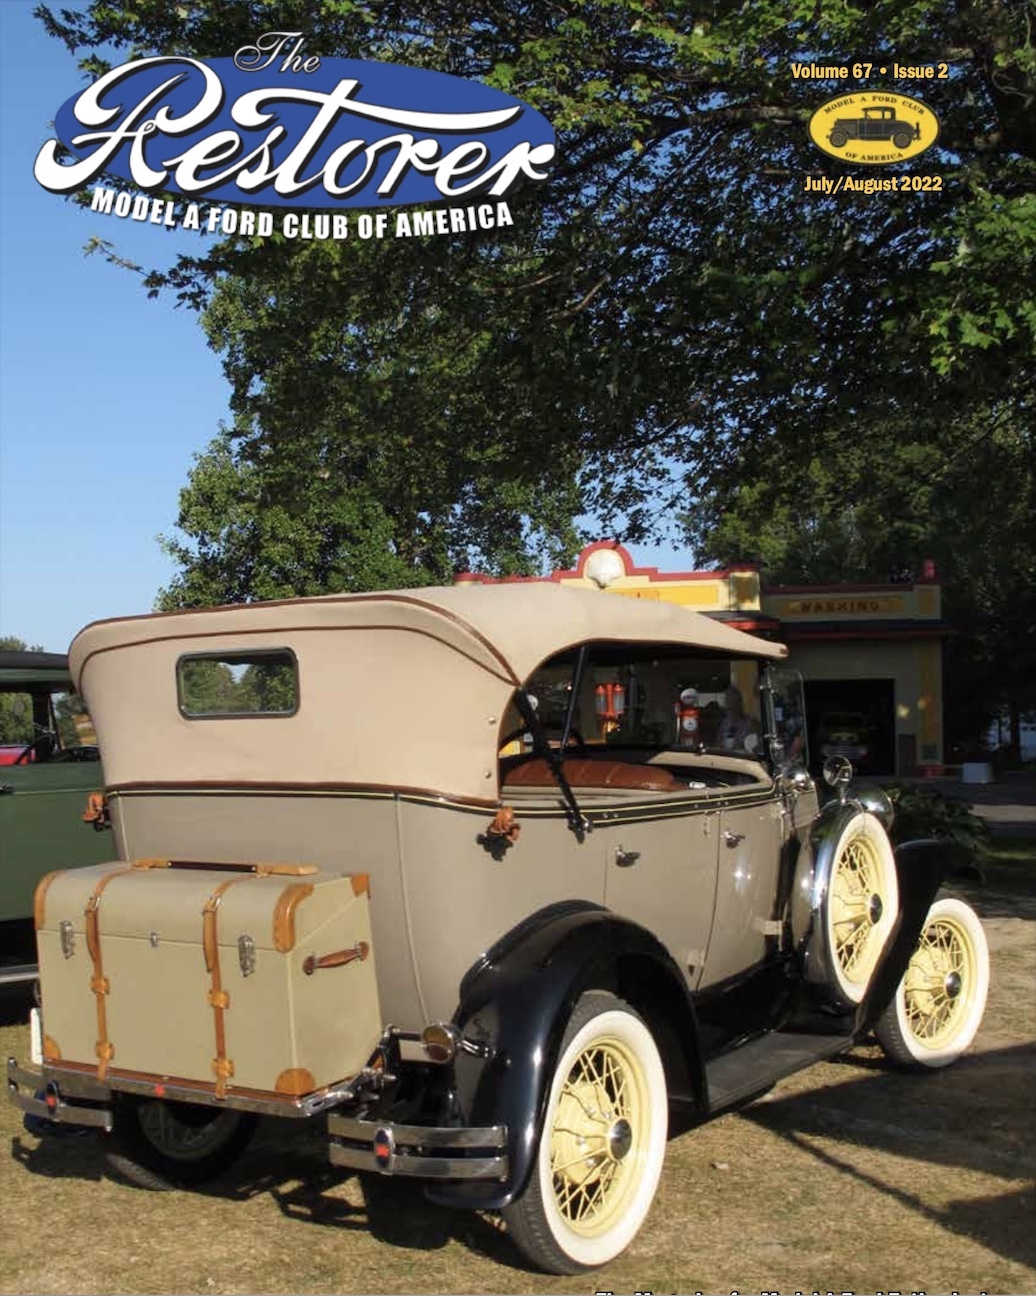 Welcome to the mafca web site the model a ford club